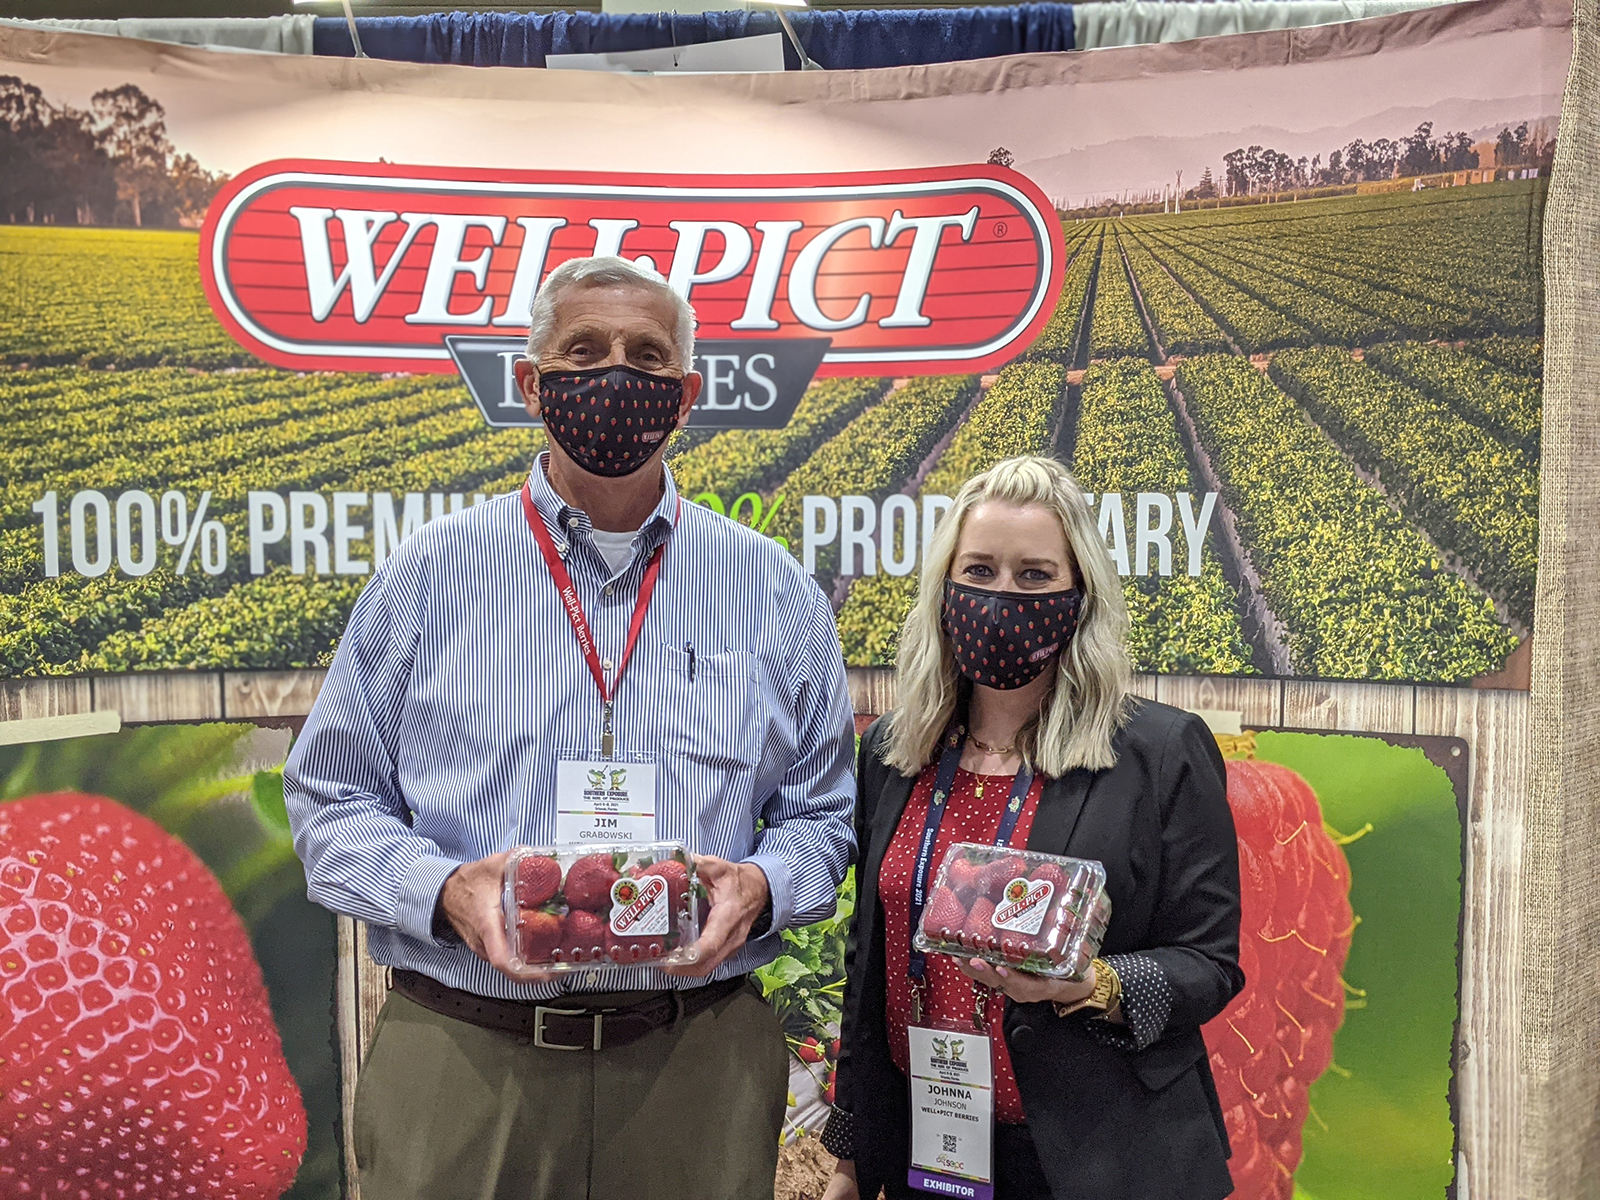 Jim Grabowski and Johnna Johnson with Well Pict Berries.